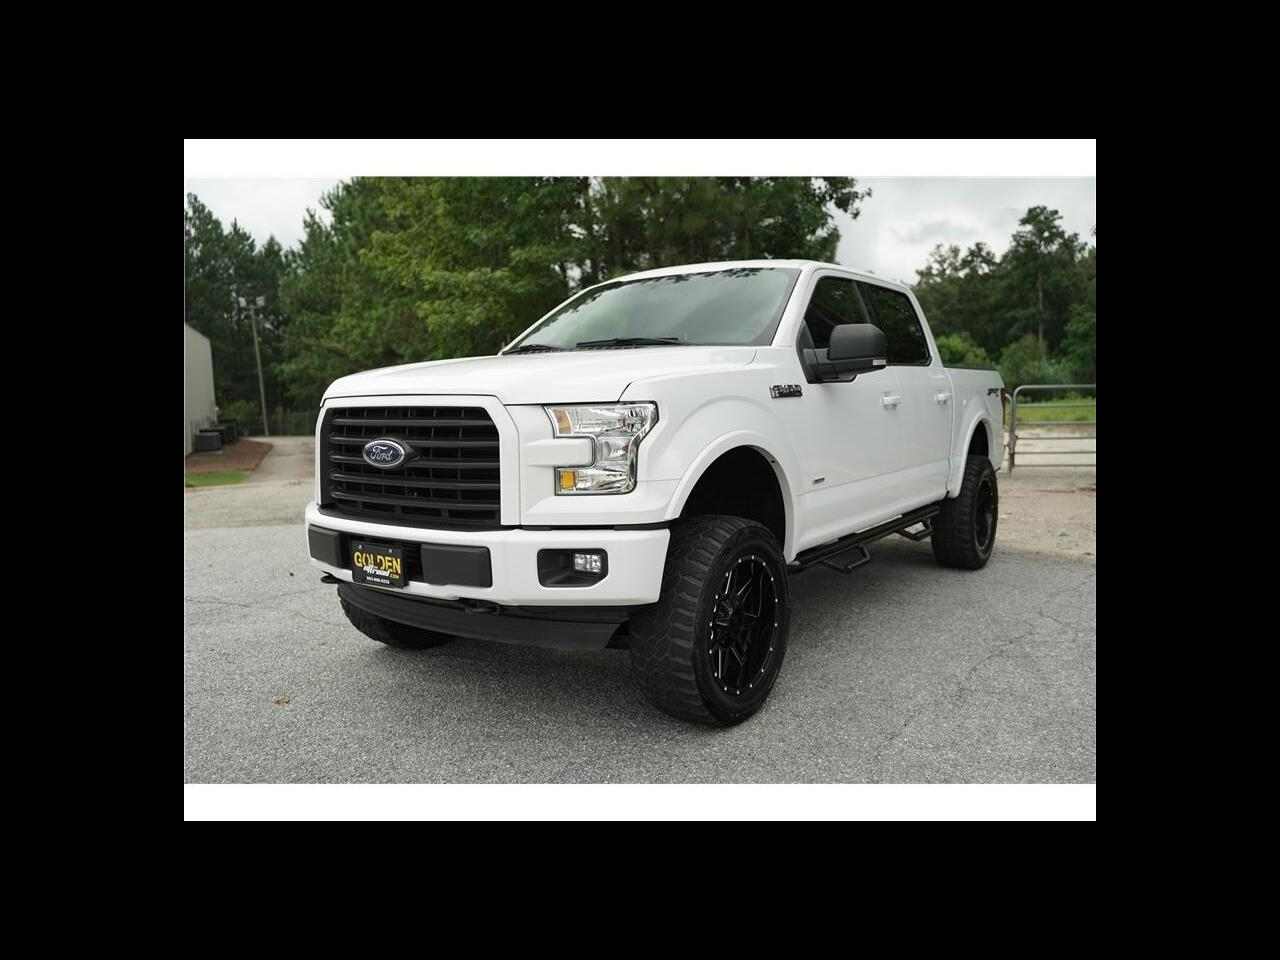 2017 Ford F-150 Super Crew Lifted Sport 4wd Upgrades! EcoBoost!